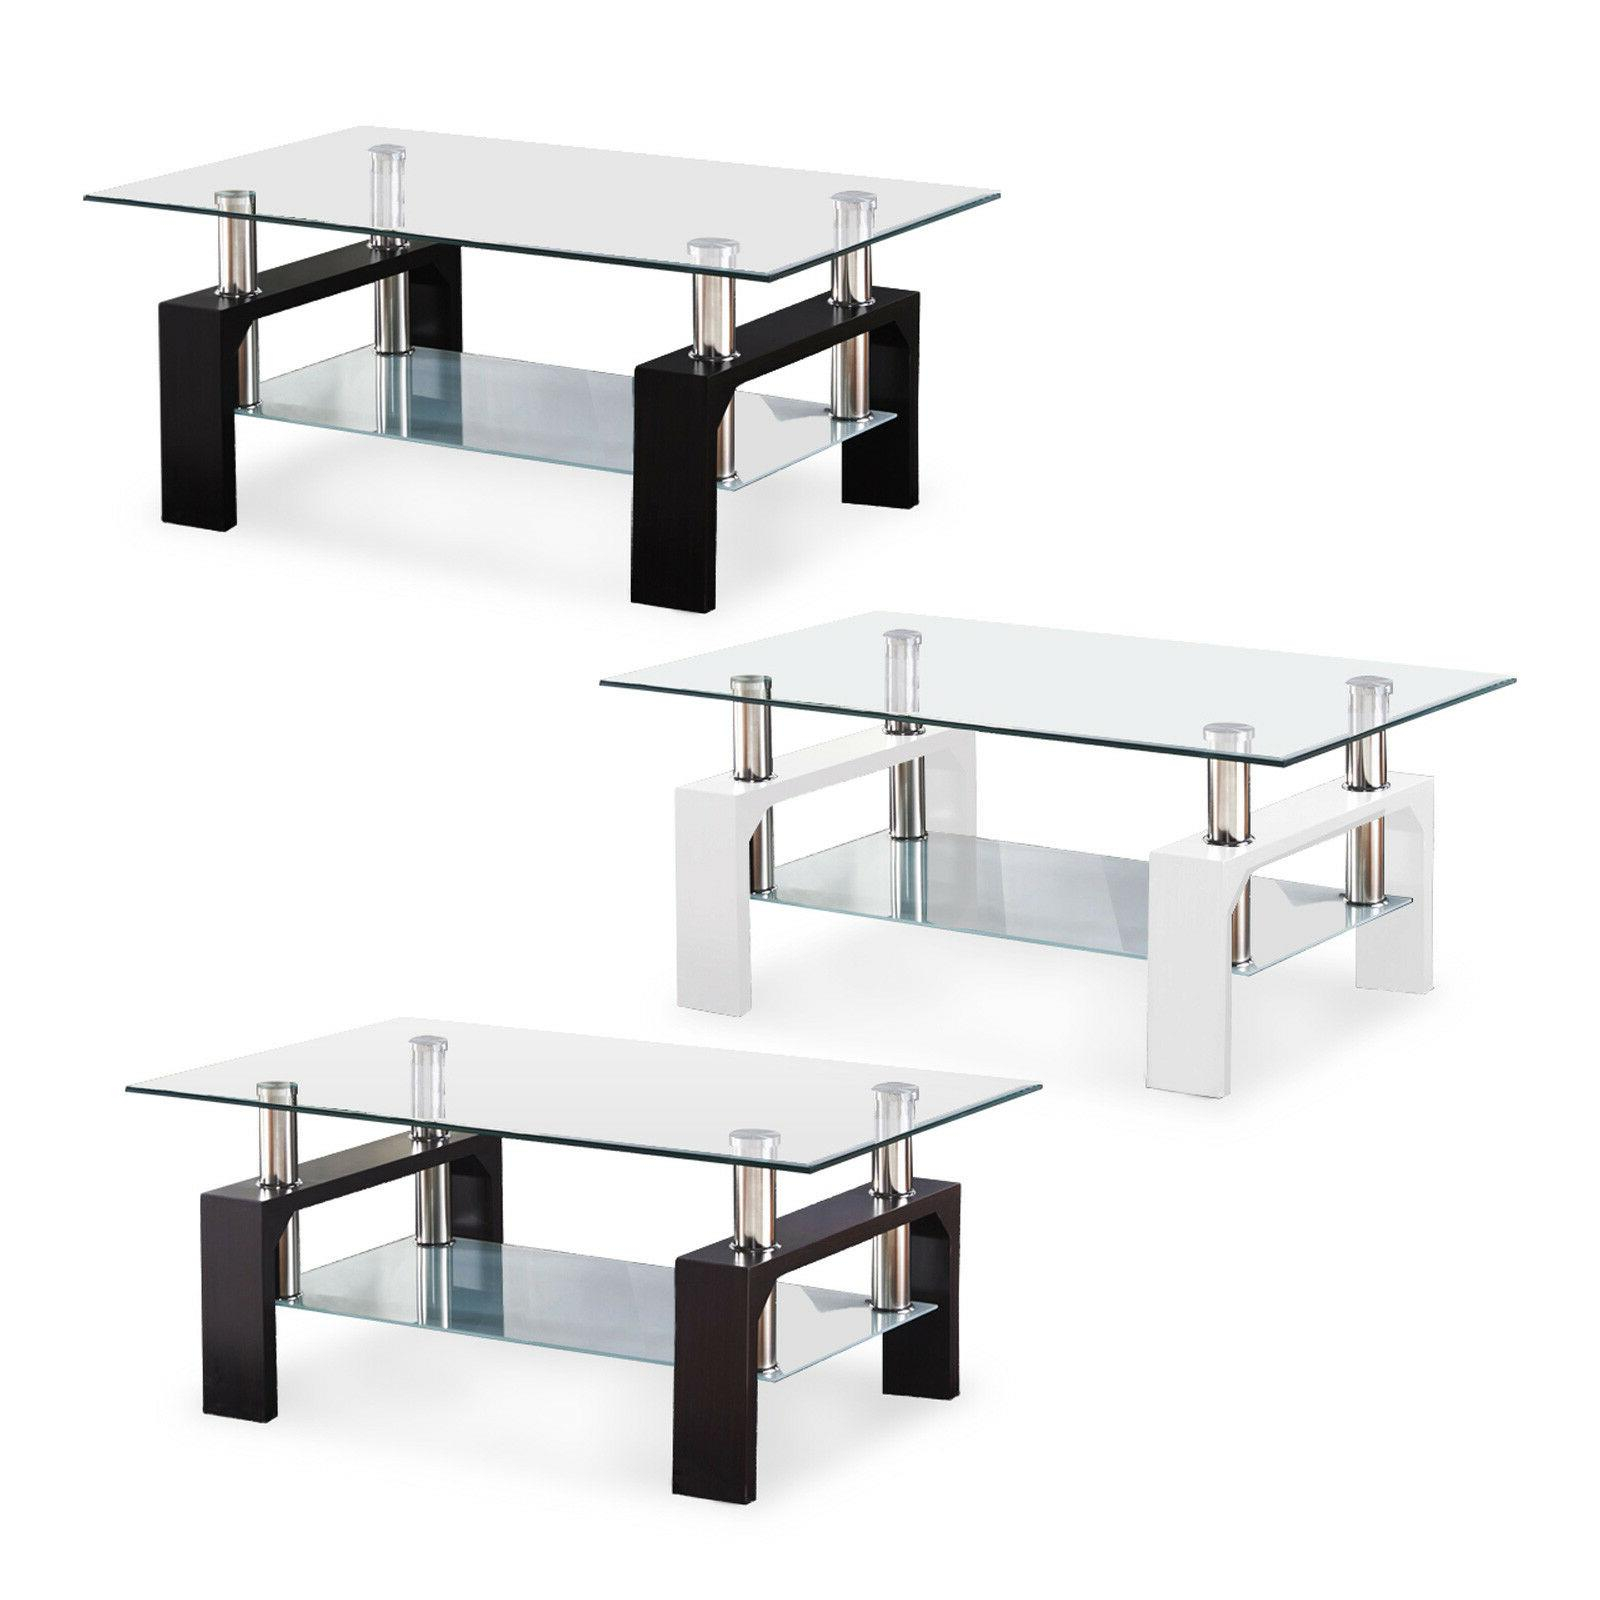 Modern Chrome Coffee Table Table w/ Furniture